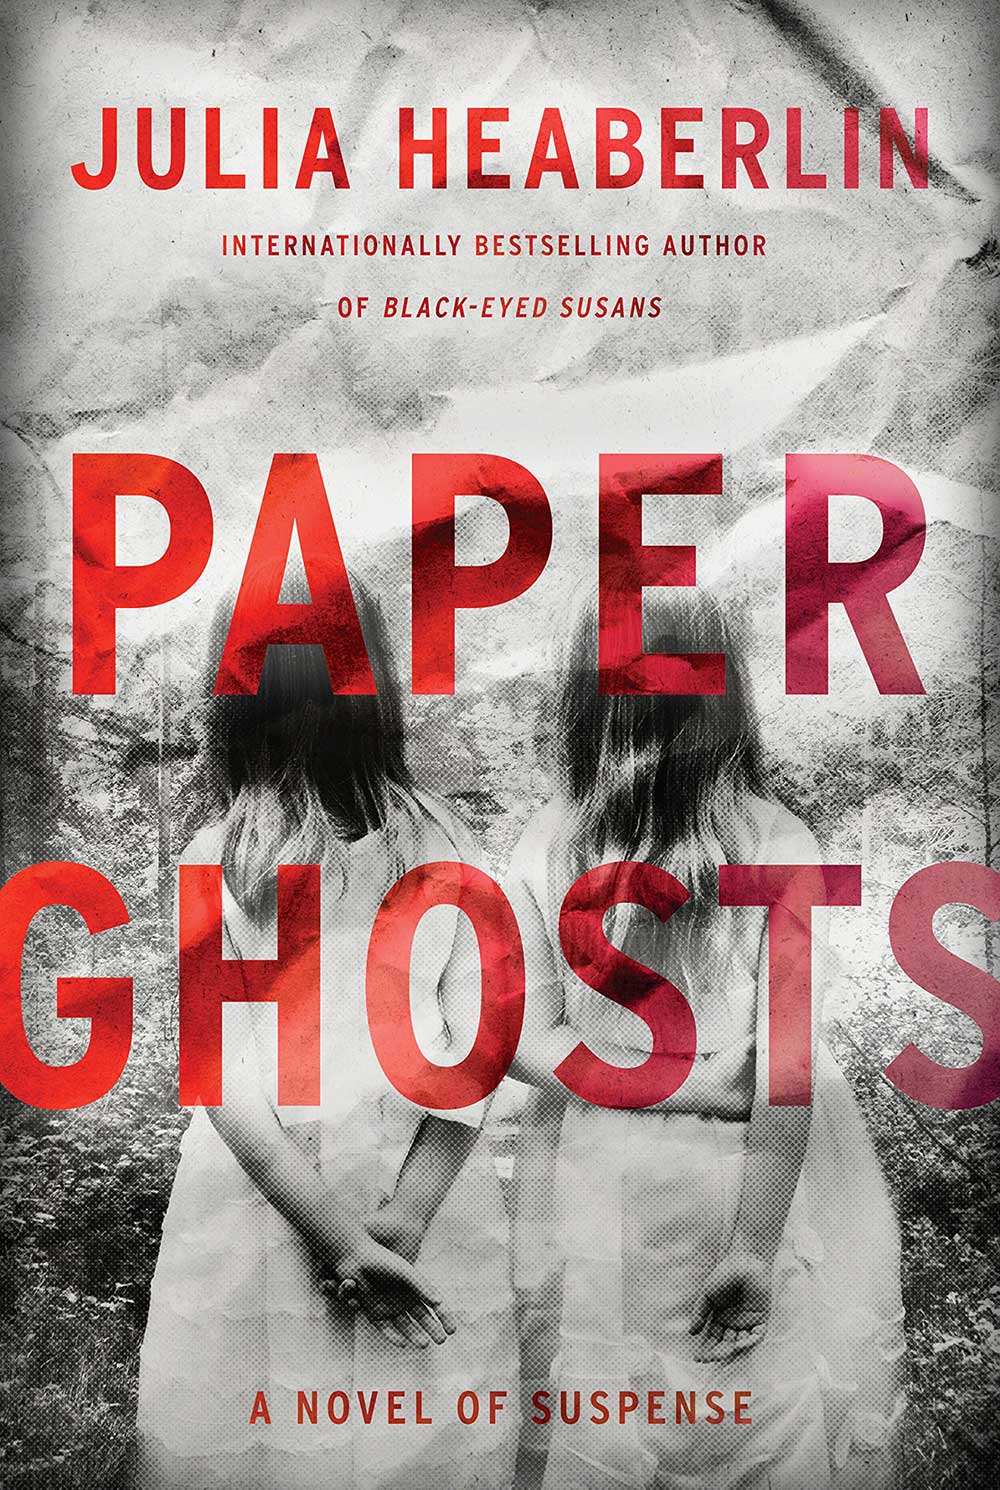 03-Paper-Ghosts